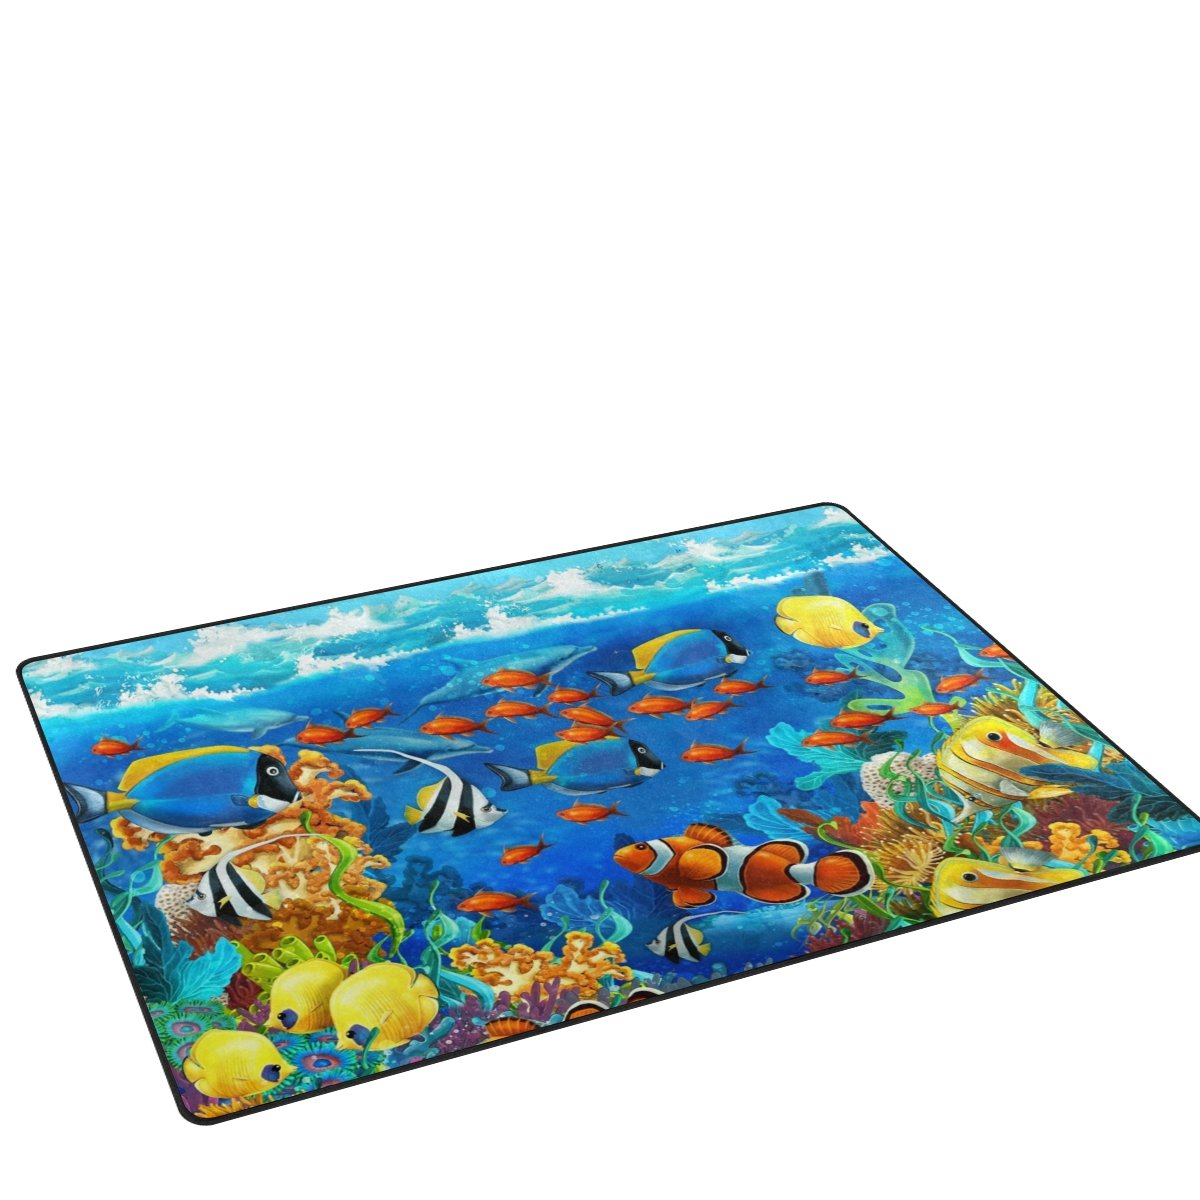 My Little Nest Beautiful Sea World Coral Reef and Fishes Kids Play Mat Baby Crawling Mat Carpet Non Slip Soft Educational Game Rug for Nursery Bedroom Classroom 3'3'' x 5'